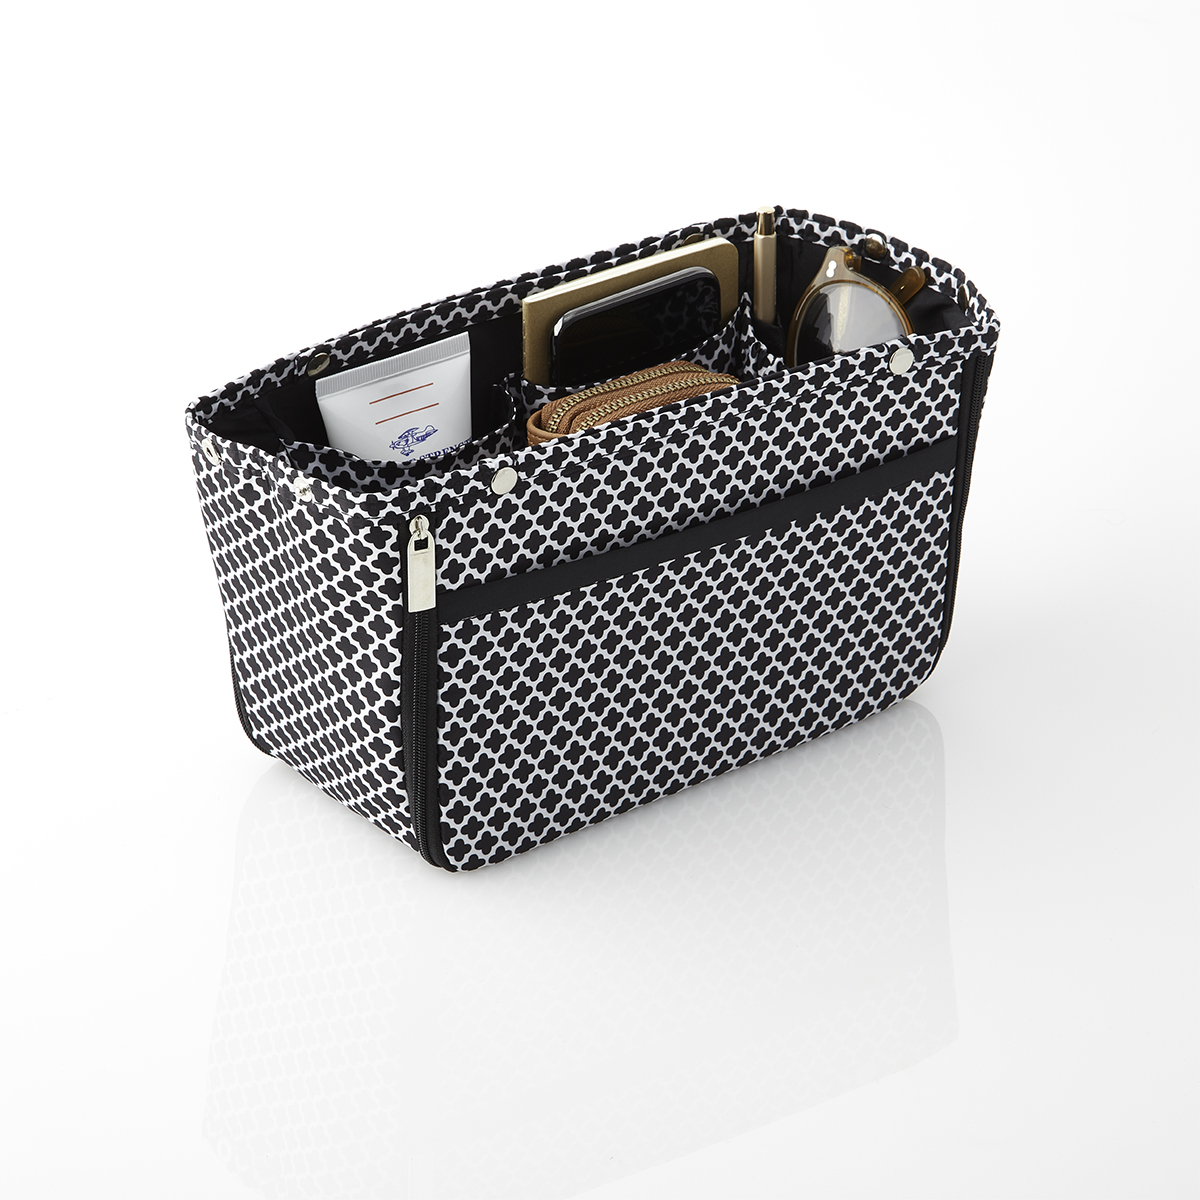 in.bag Black Moroccan Purse Organizer